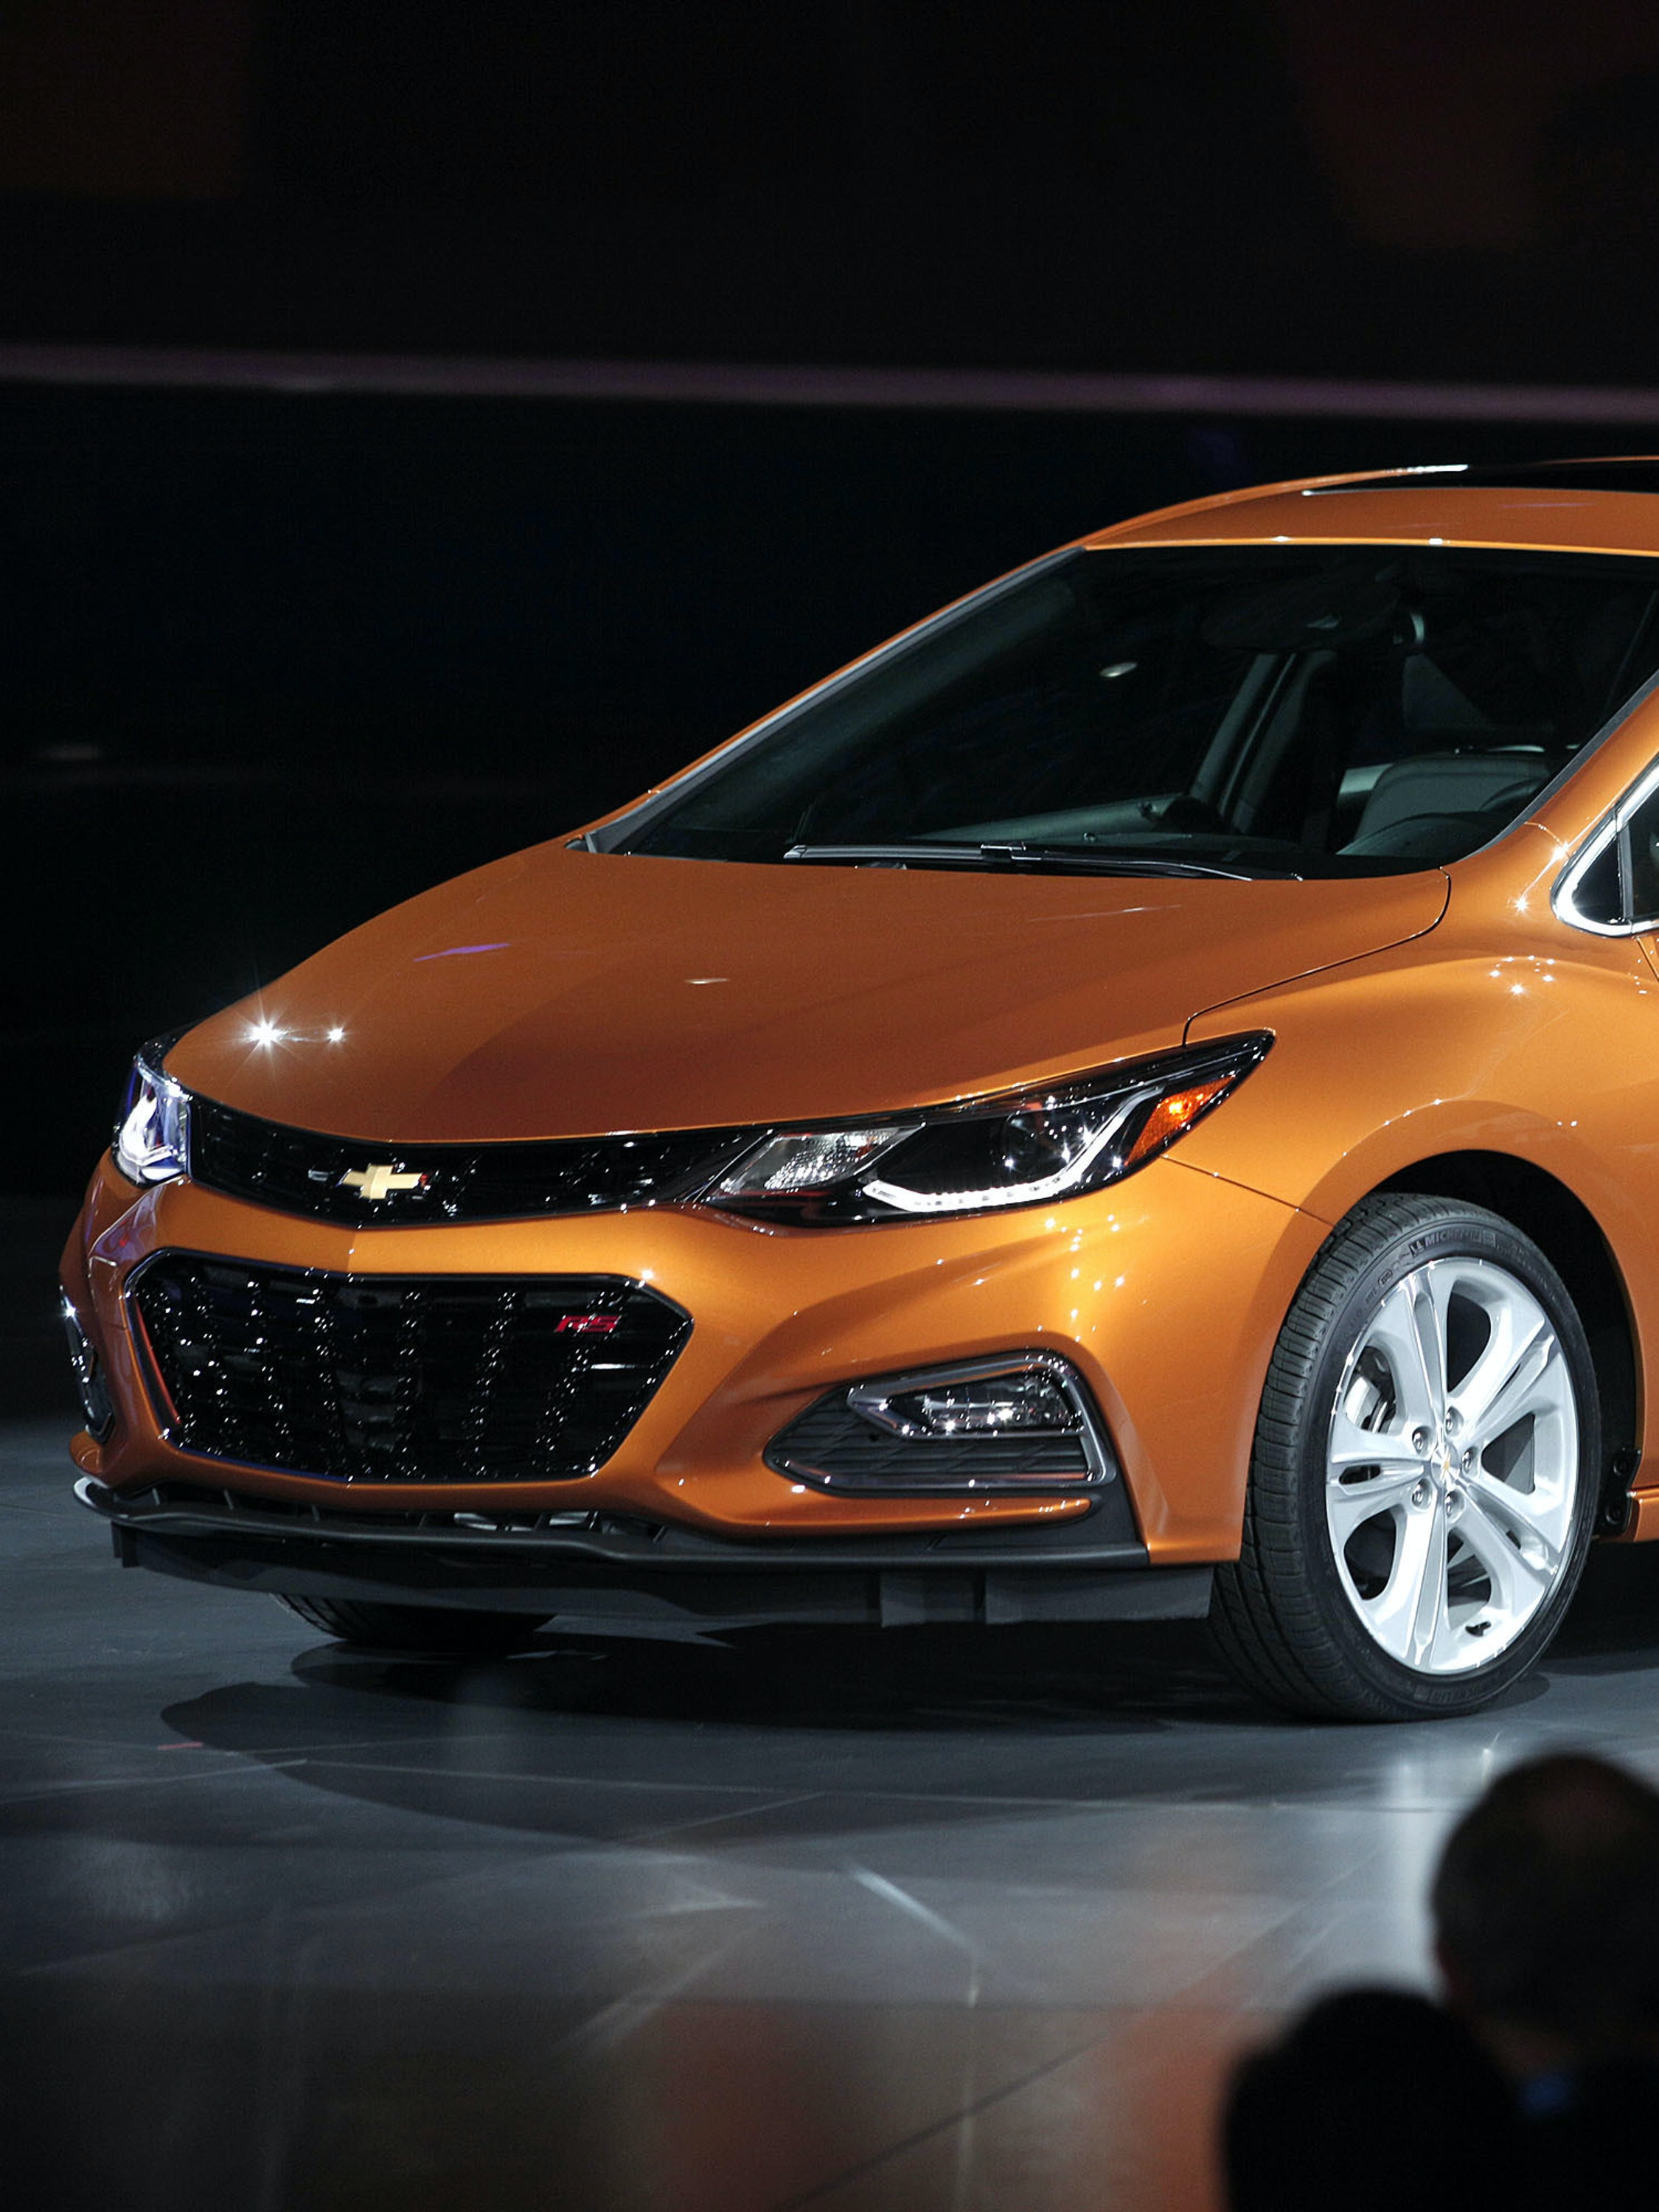 DETROIT, MI - The 2017 Chevy Cruze Hatchback is revealed to the news media at the 2016 North American International Auto Show January 11th, 2016 in Detroit, Michigan. The NAIAS runs from January 11th to January 24th and will feature over 750 vehicles and interactive displays.  (Photo by Bill Pugliano/Getty Images)